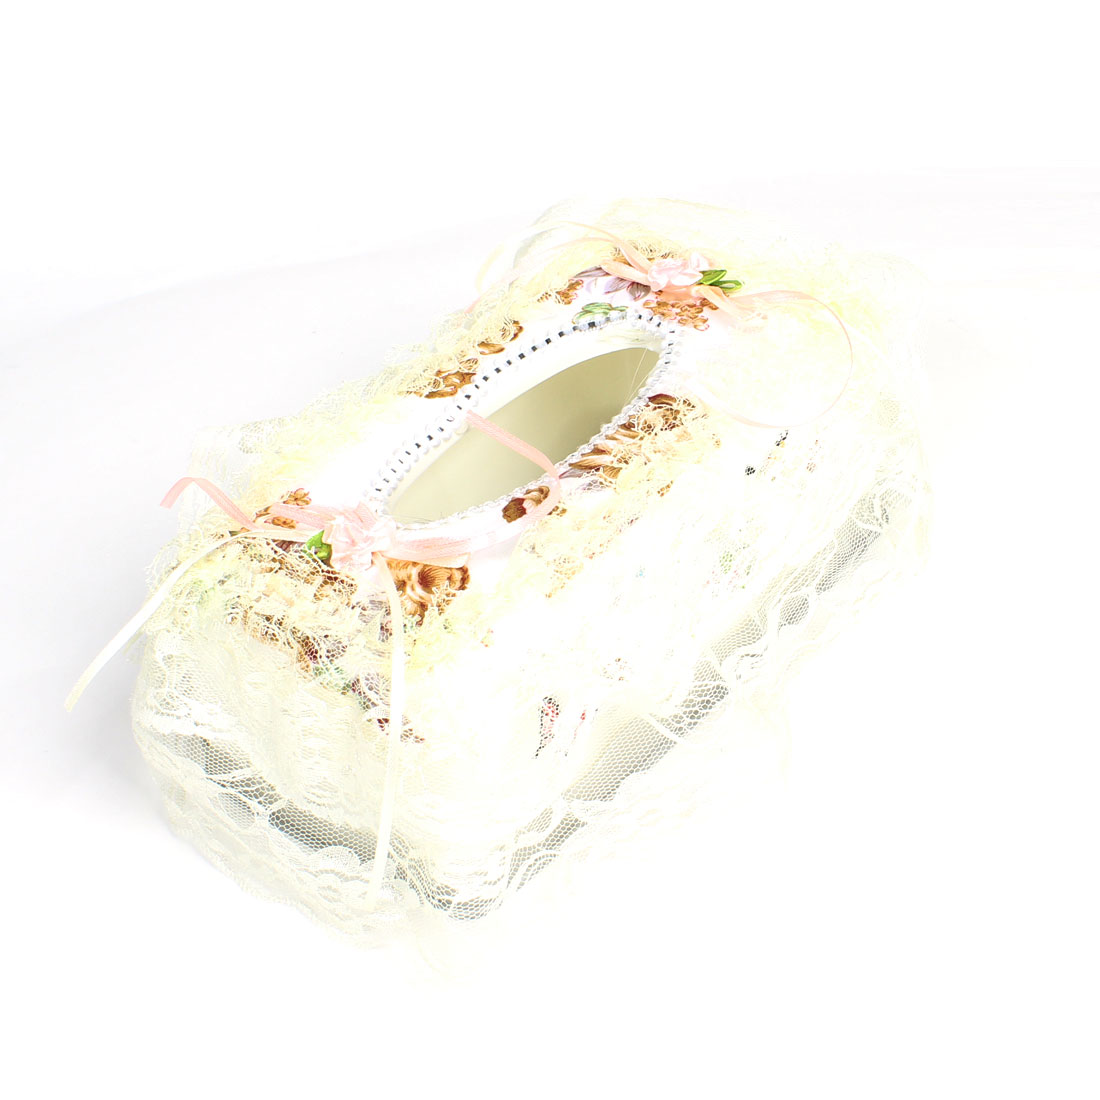 Flower Print Lace Rim Detachable Bottom Rectangle Tissue Box Beige White